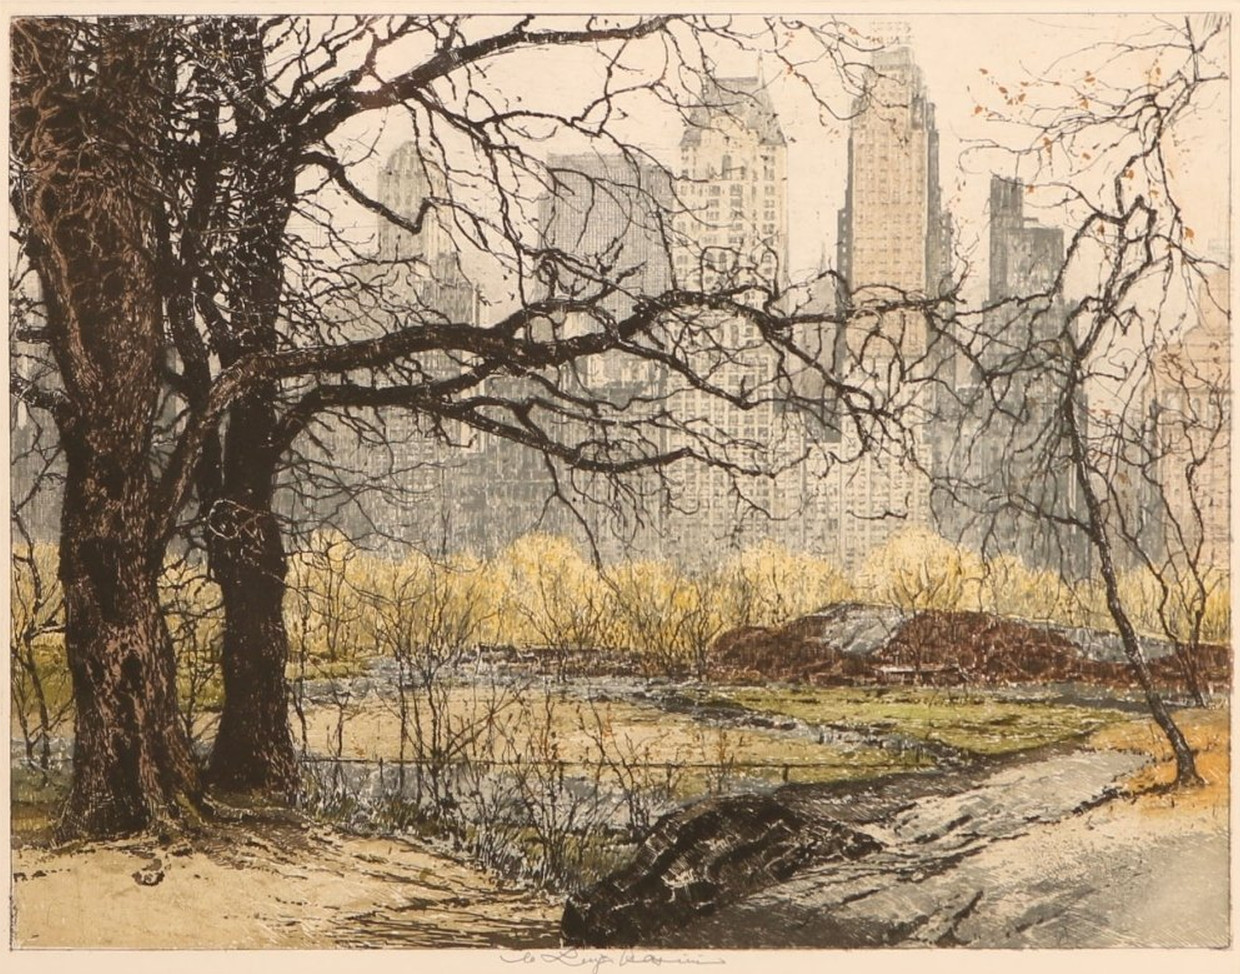 New York in the 1920's & 30's as Seen by Luigi Kasimir - Part 2